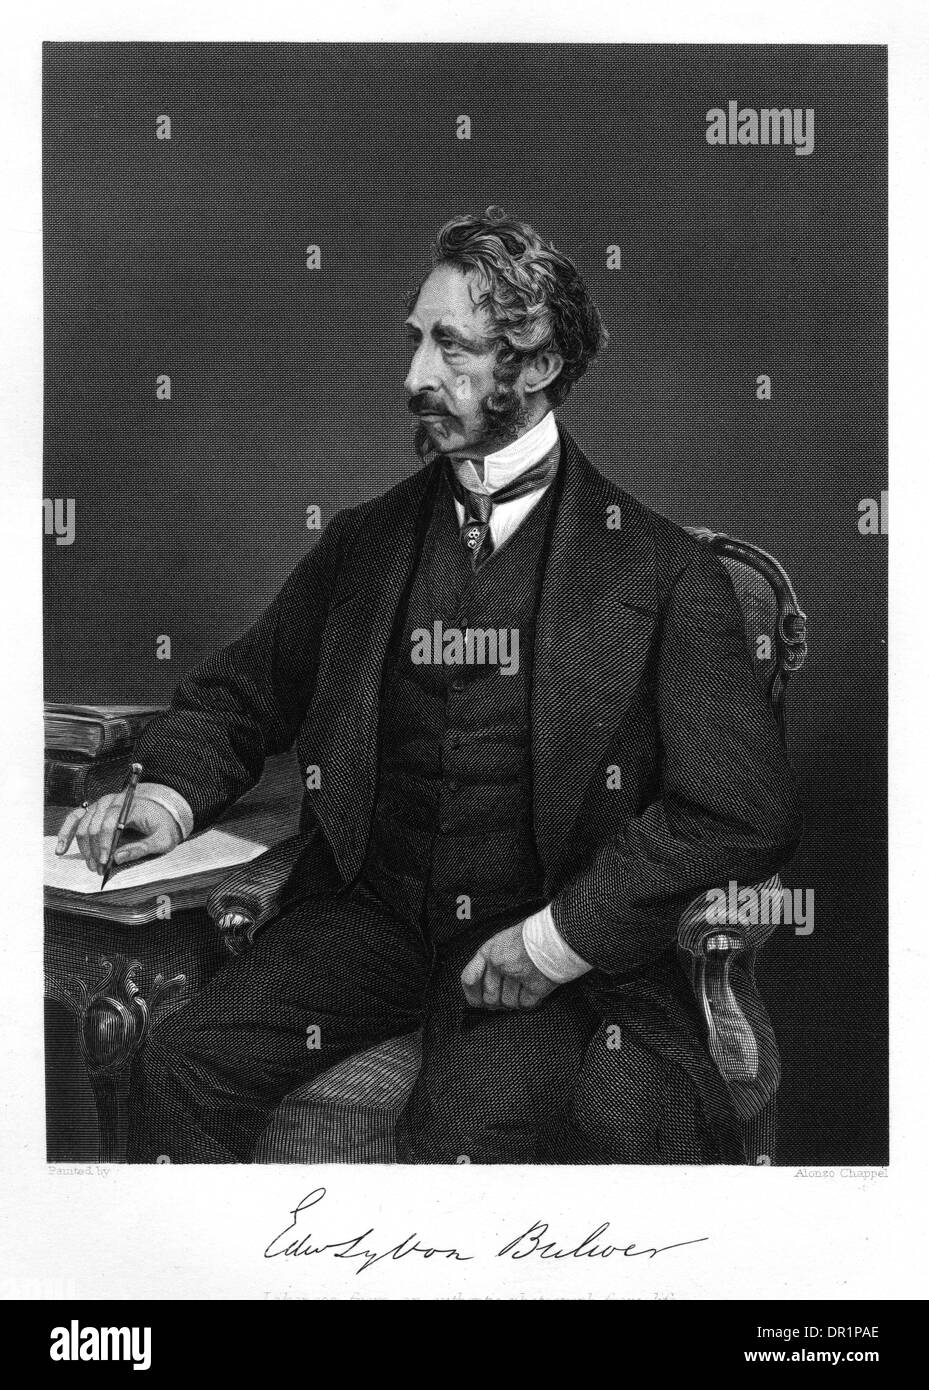 EDWARD BULWER LYTTON Stock Photo